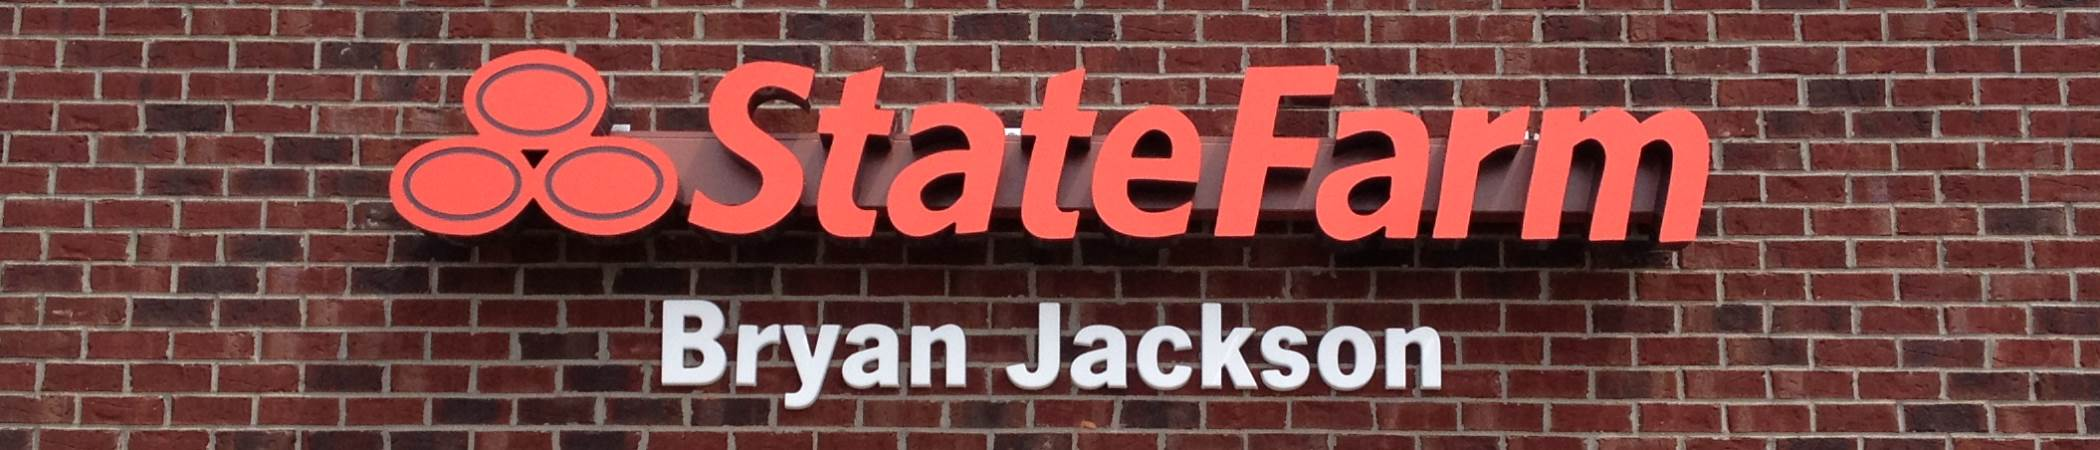 Bryan Jackson State Farm Insurance in Jeffersonville, IN | Home, Auto Insurance & more